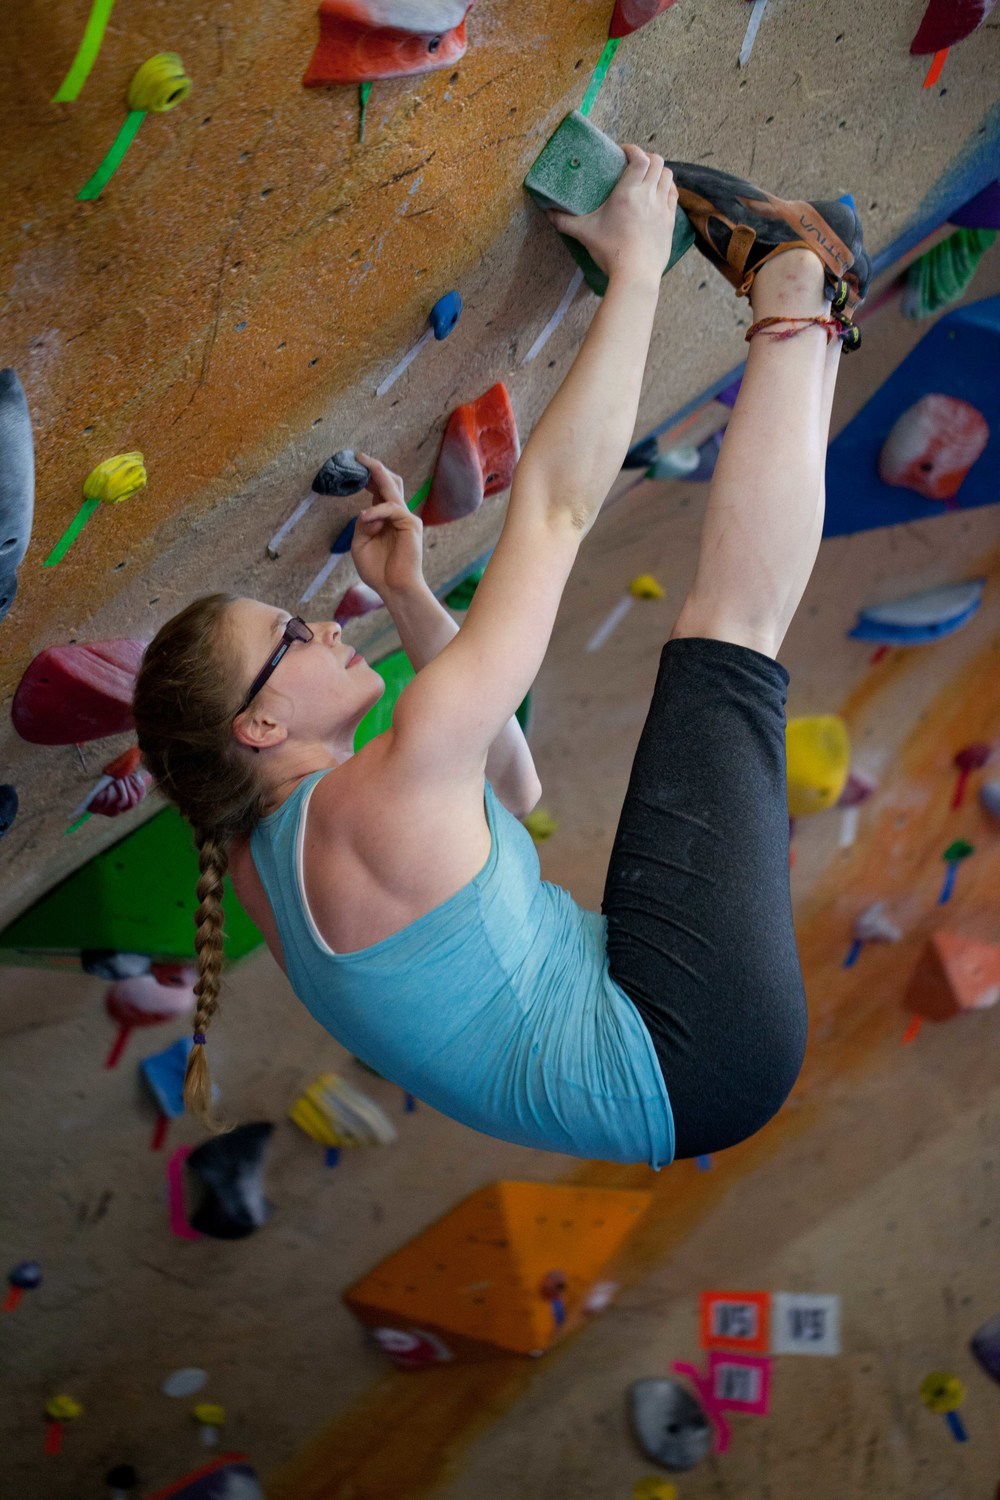 2013_08_11 Andrea climbing photos-51-17.jpg